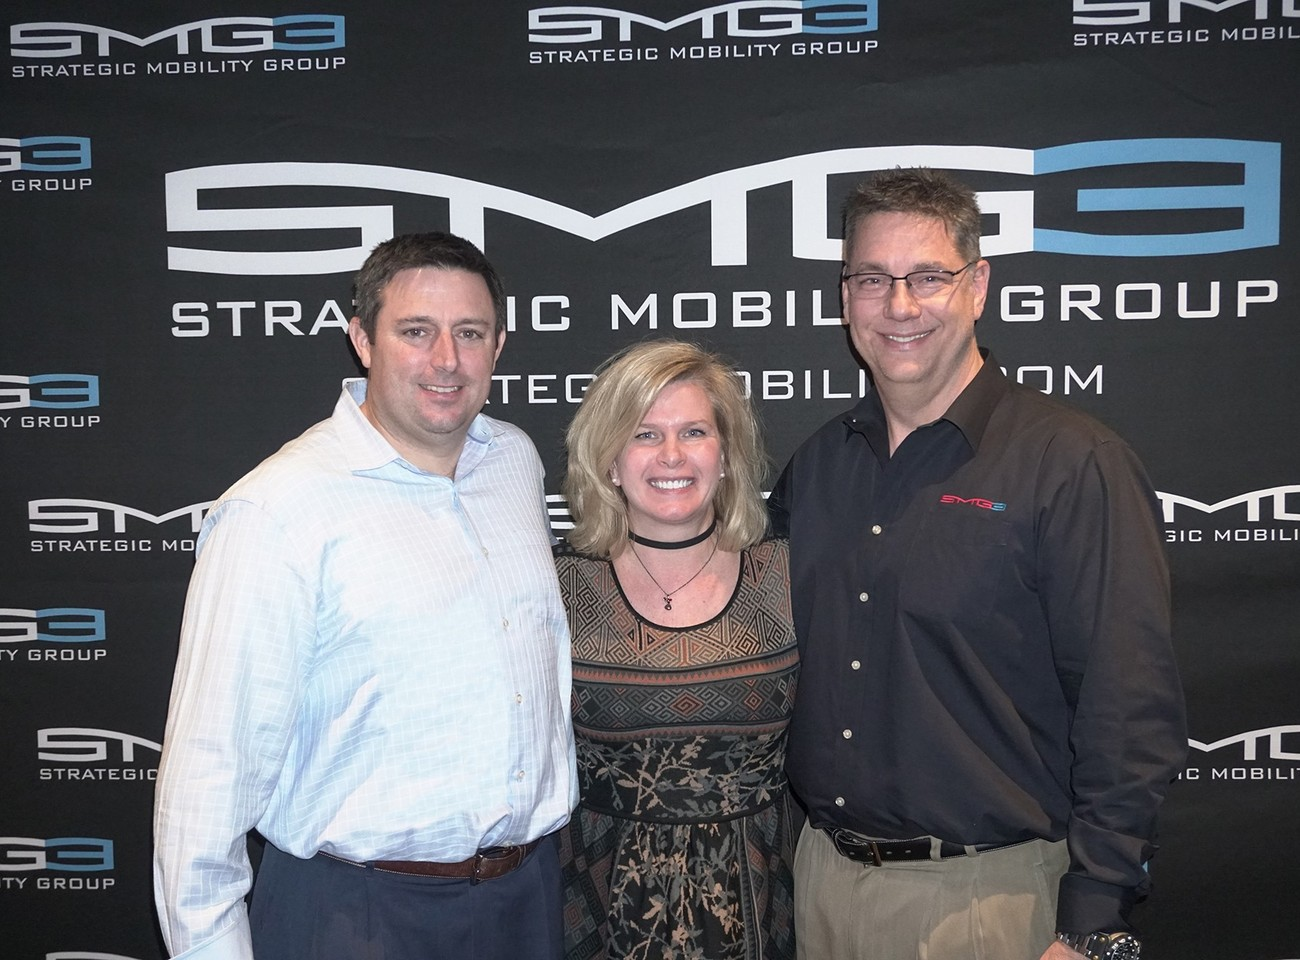 Strategic Mobility Group Careers